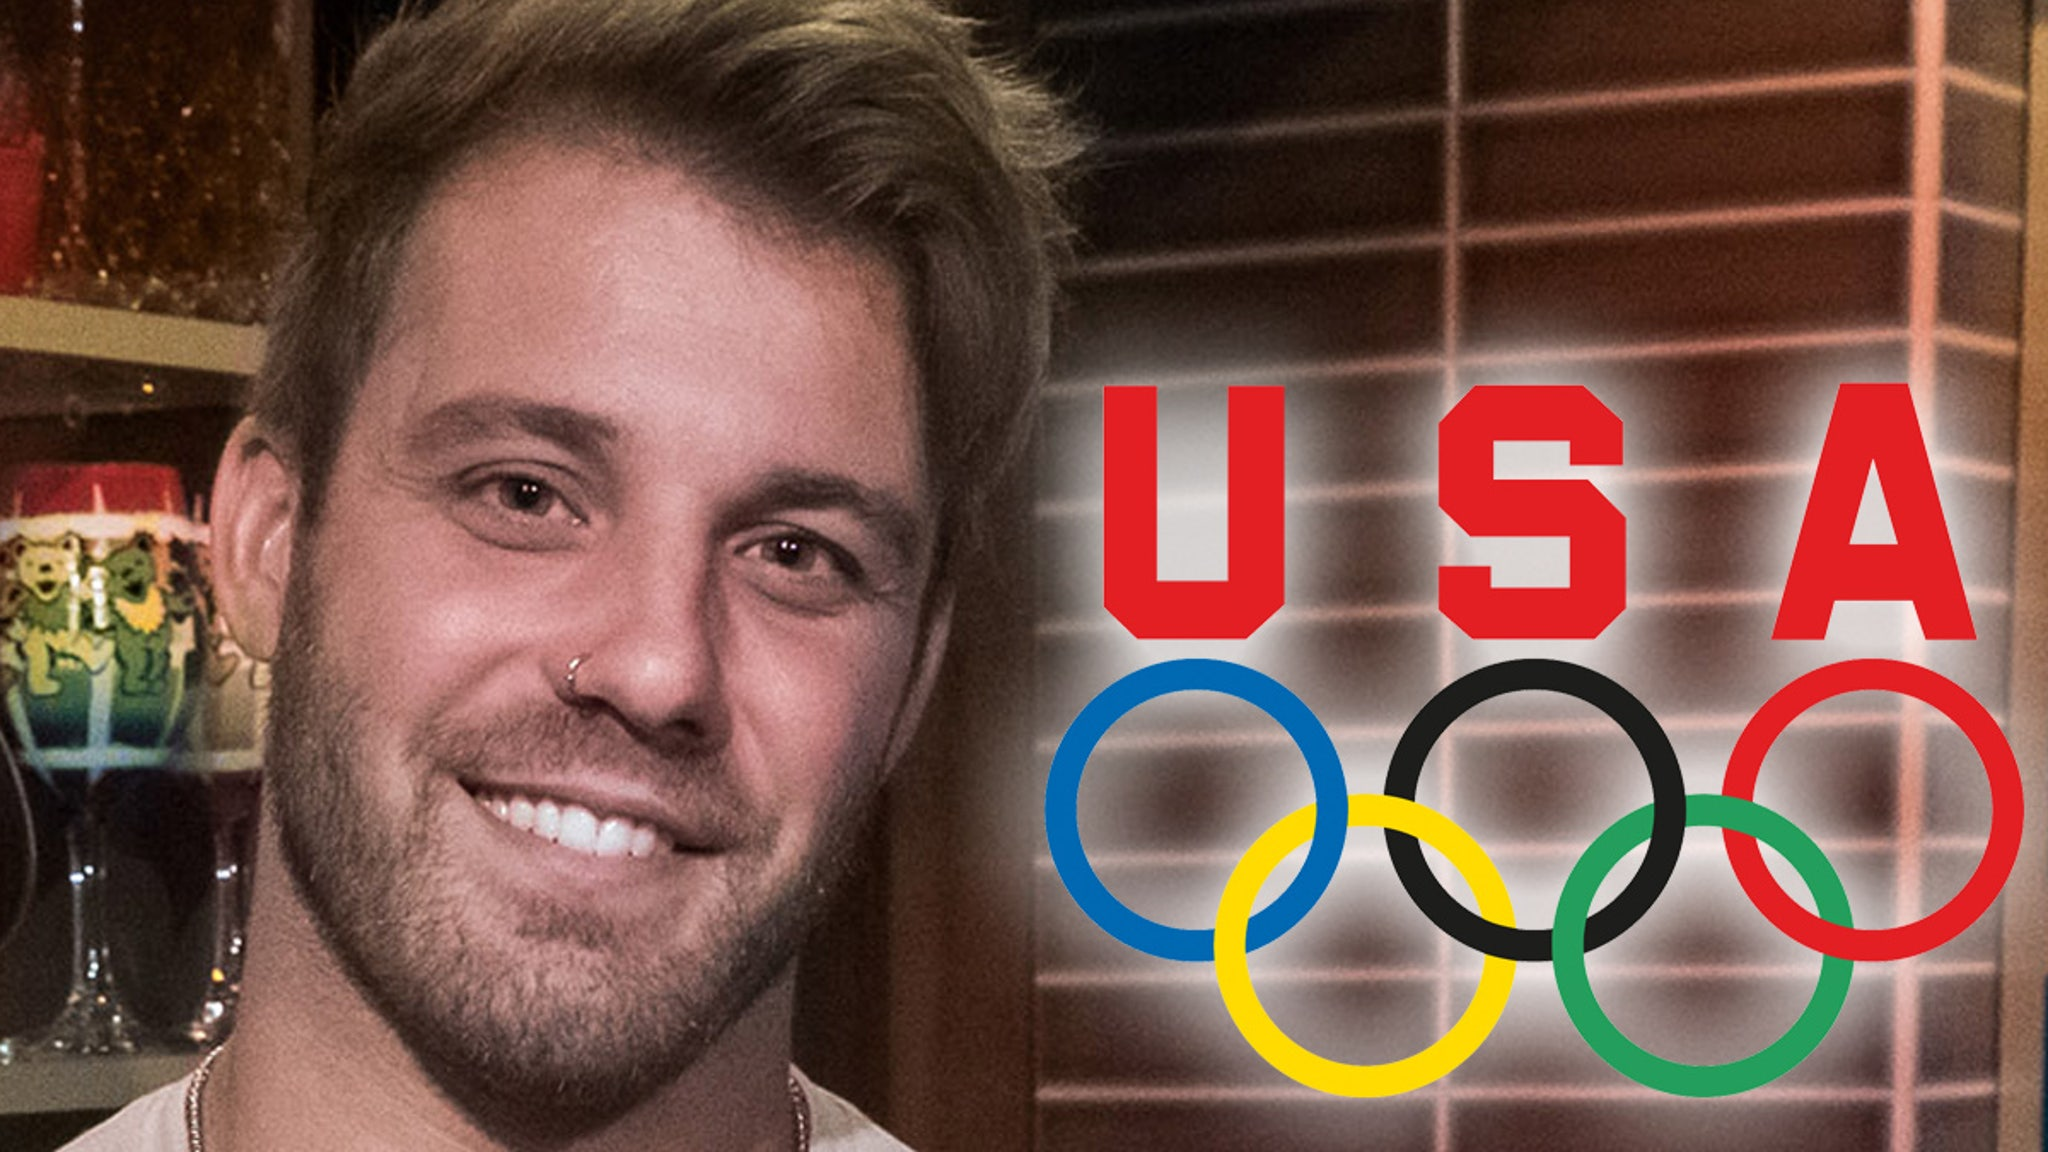 Paulie Calafiore From 'Big Brother' to Bobsled Track? Gunning for Olympics!!!